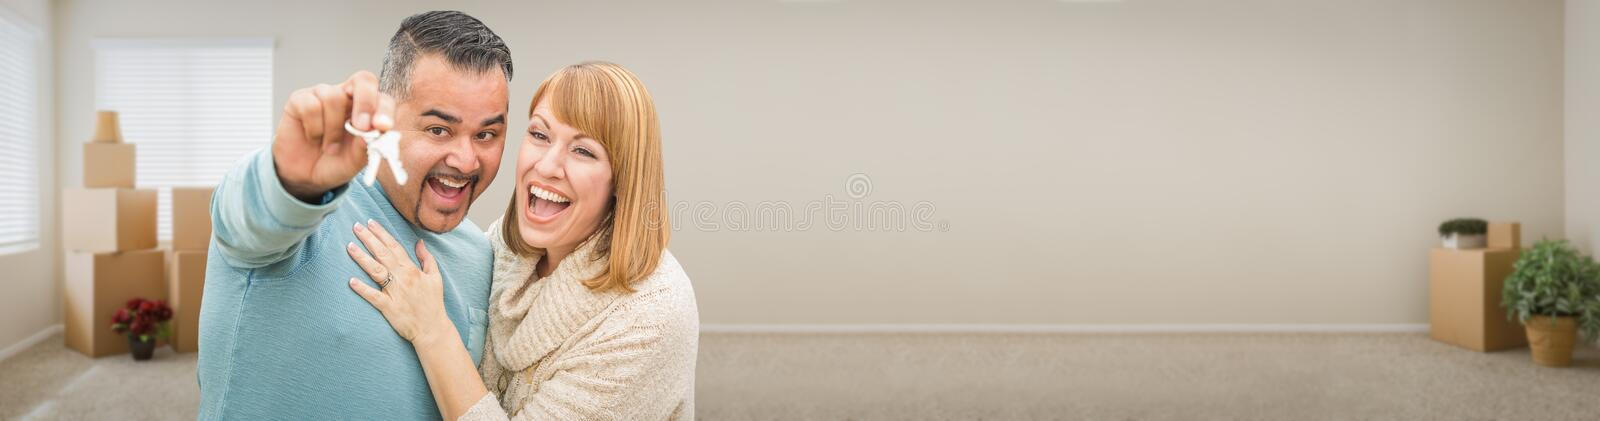 Young Adult Couple Inside Room with Boxes Holding New House Keys. Banner royalty free stock image